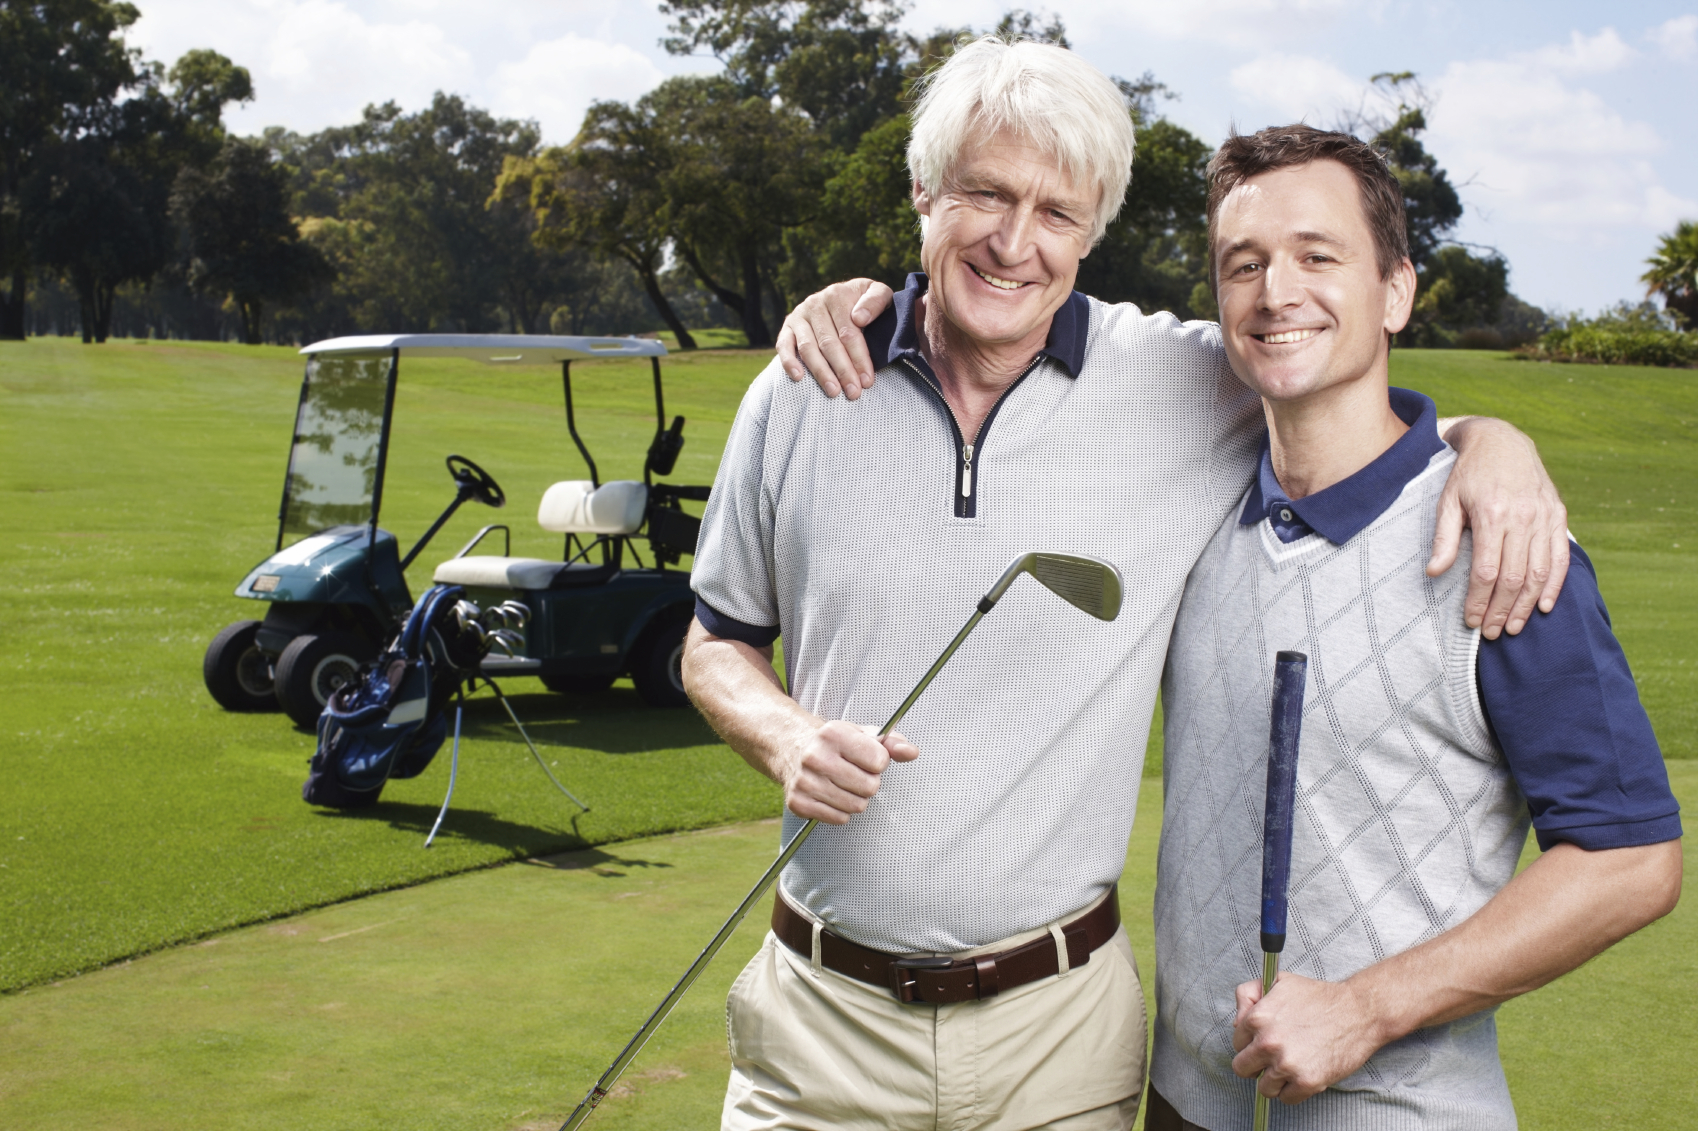 How to Make Your Charity Golf Tournament Fun for Everyone